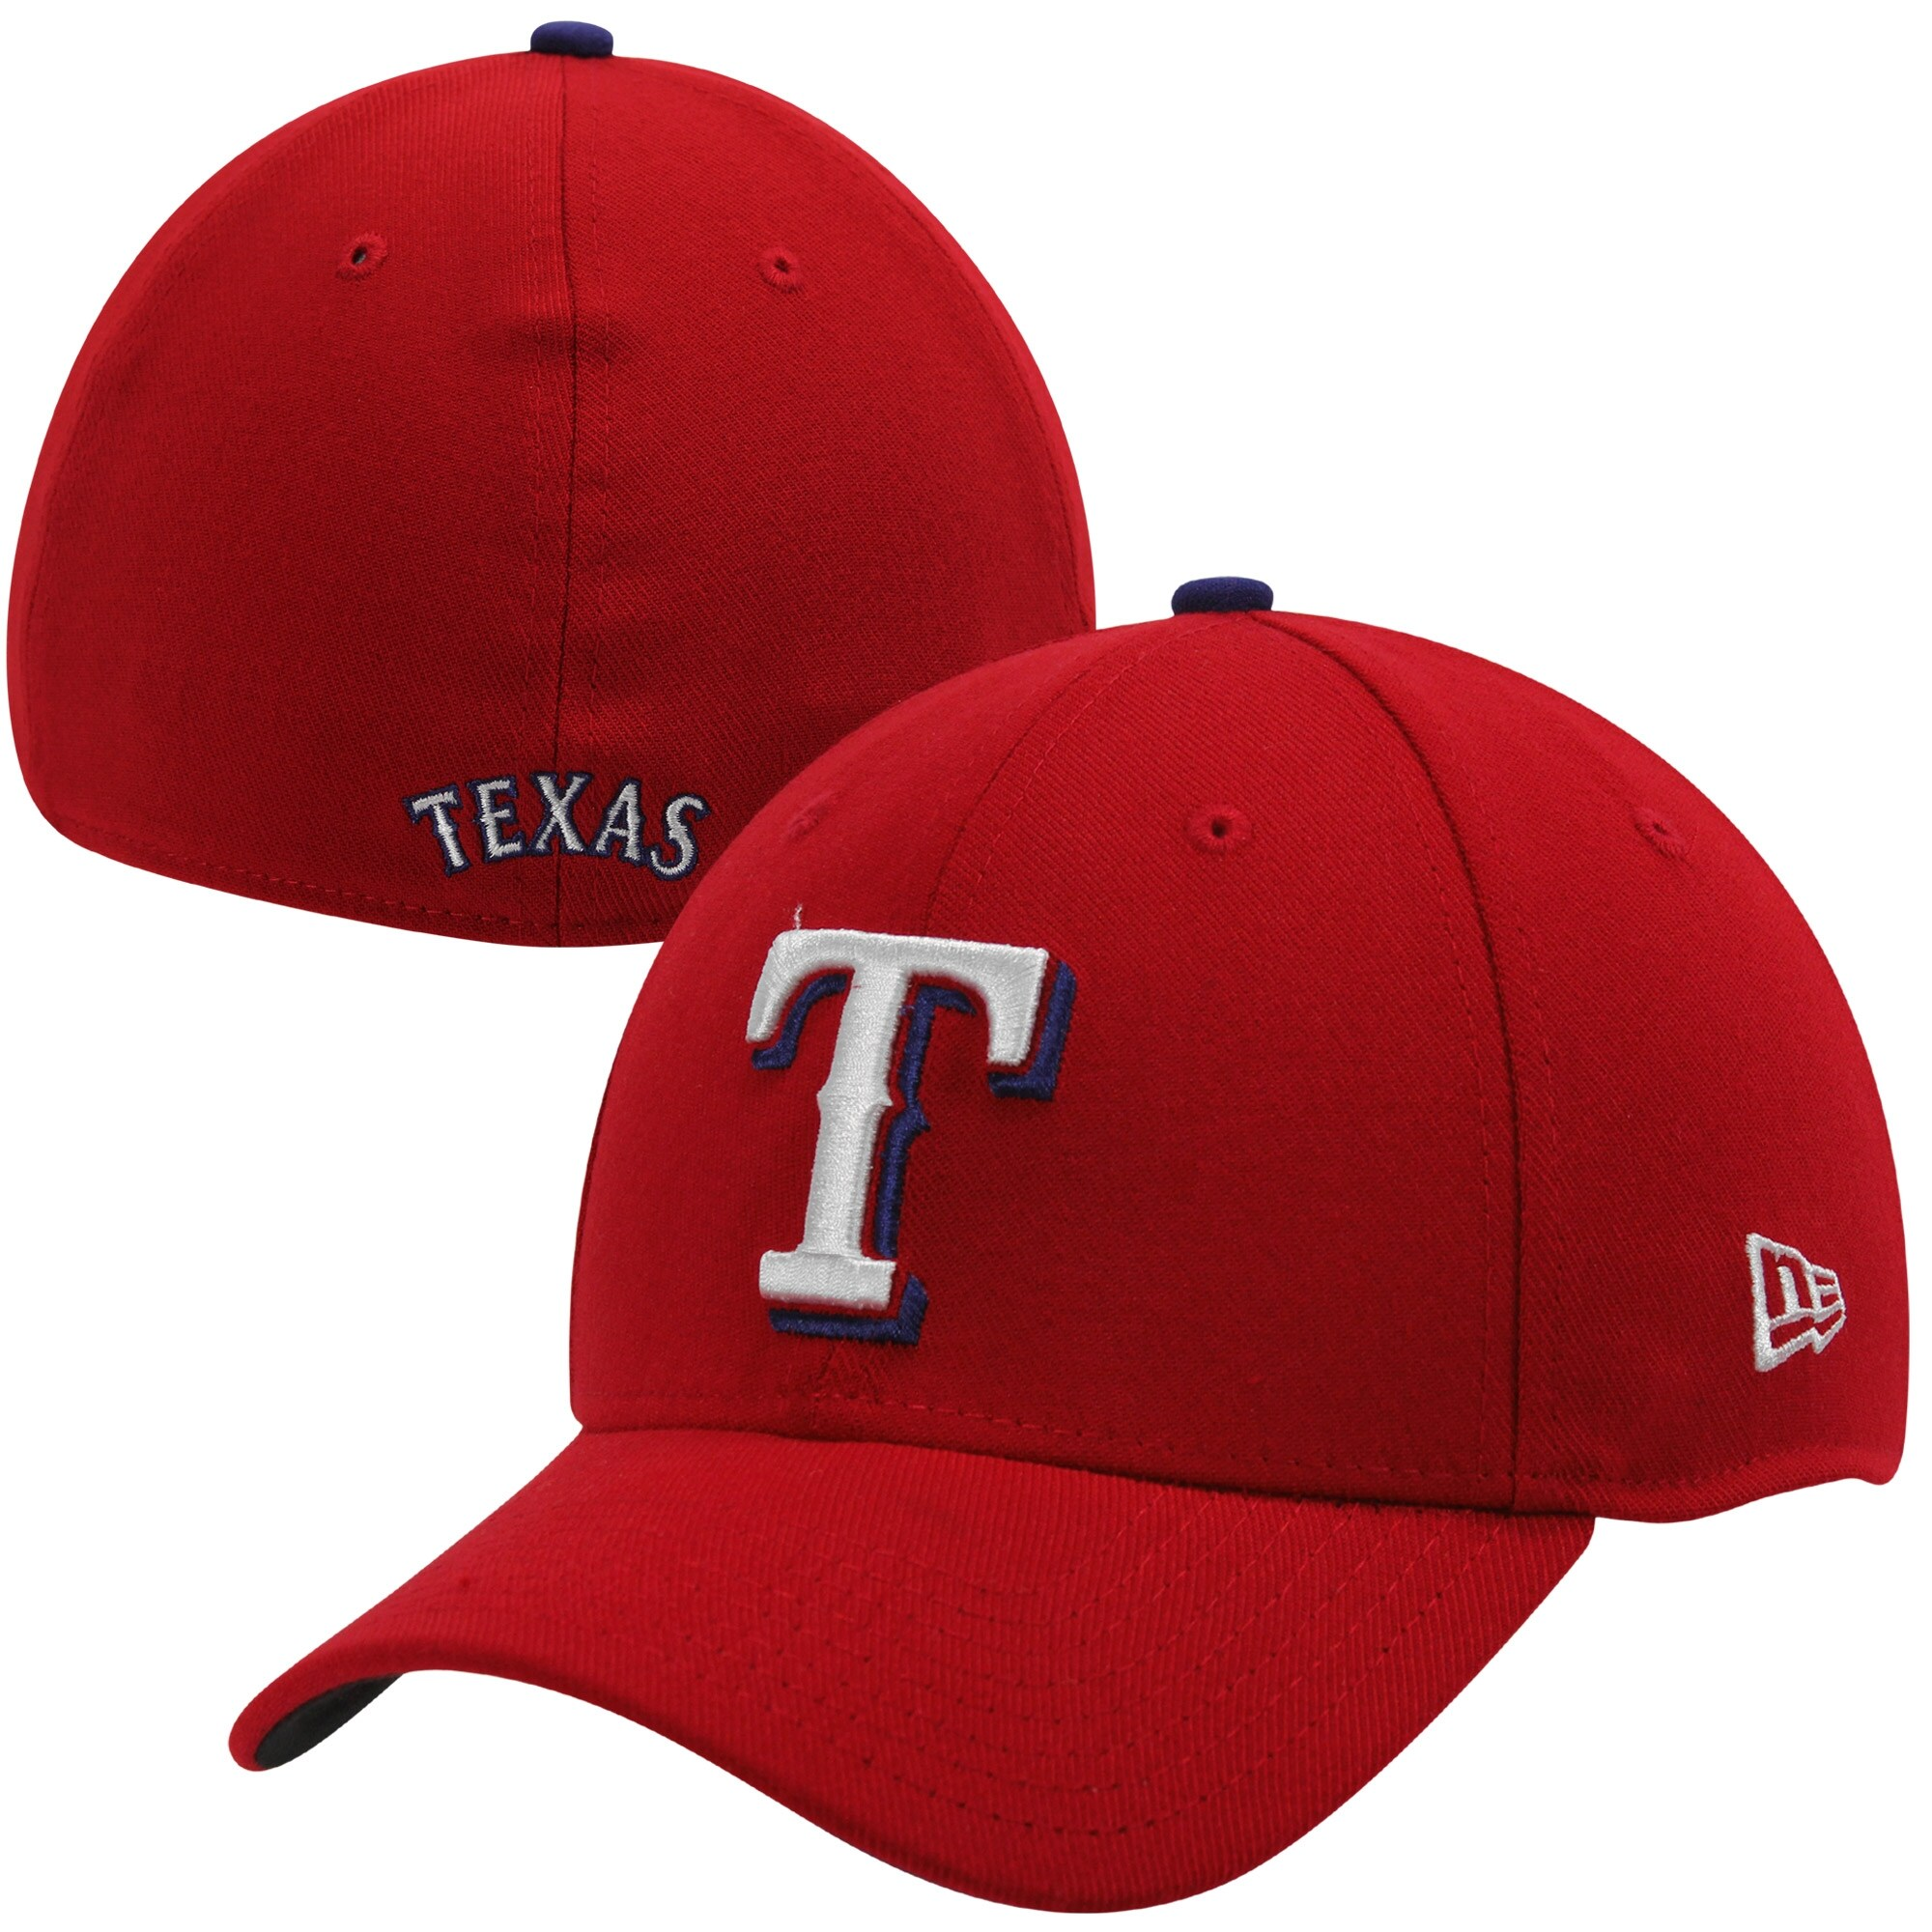 New Era Texas Rangers MLB Team Classic 39THIRTY Flex Hat - Red